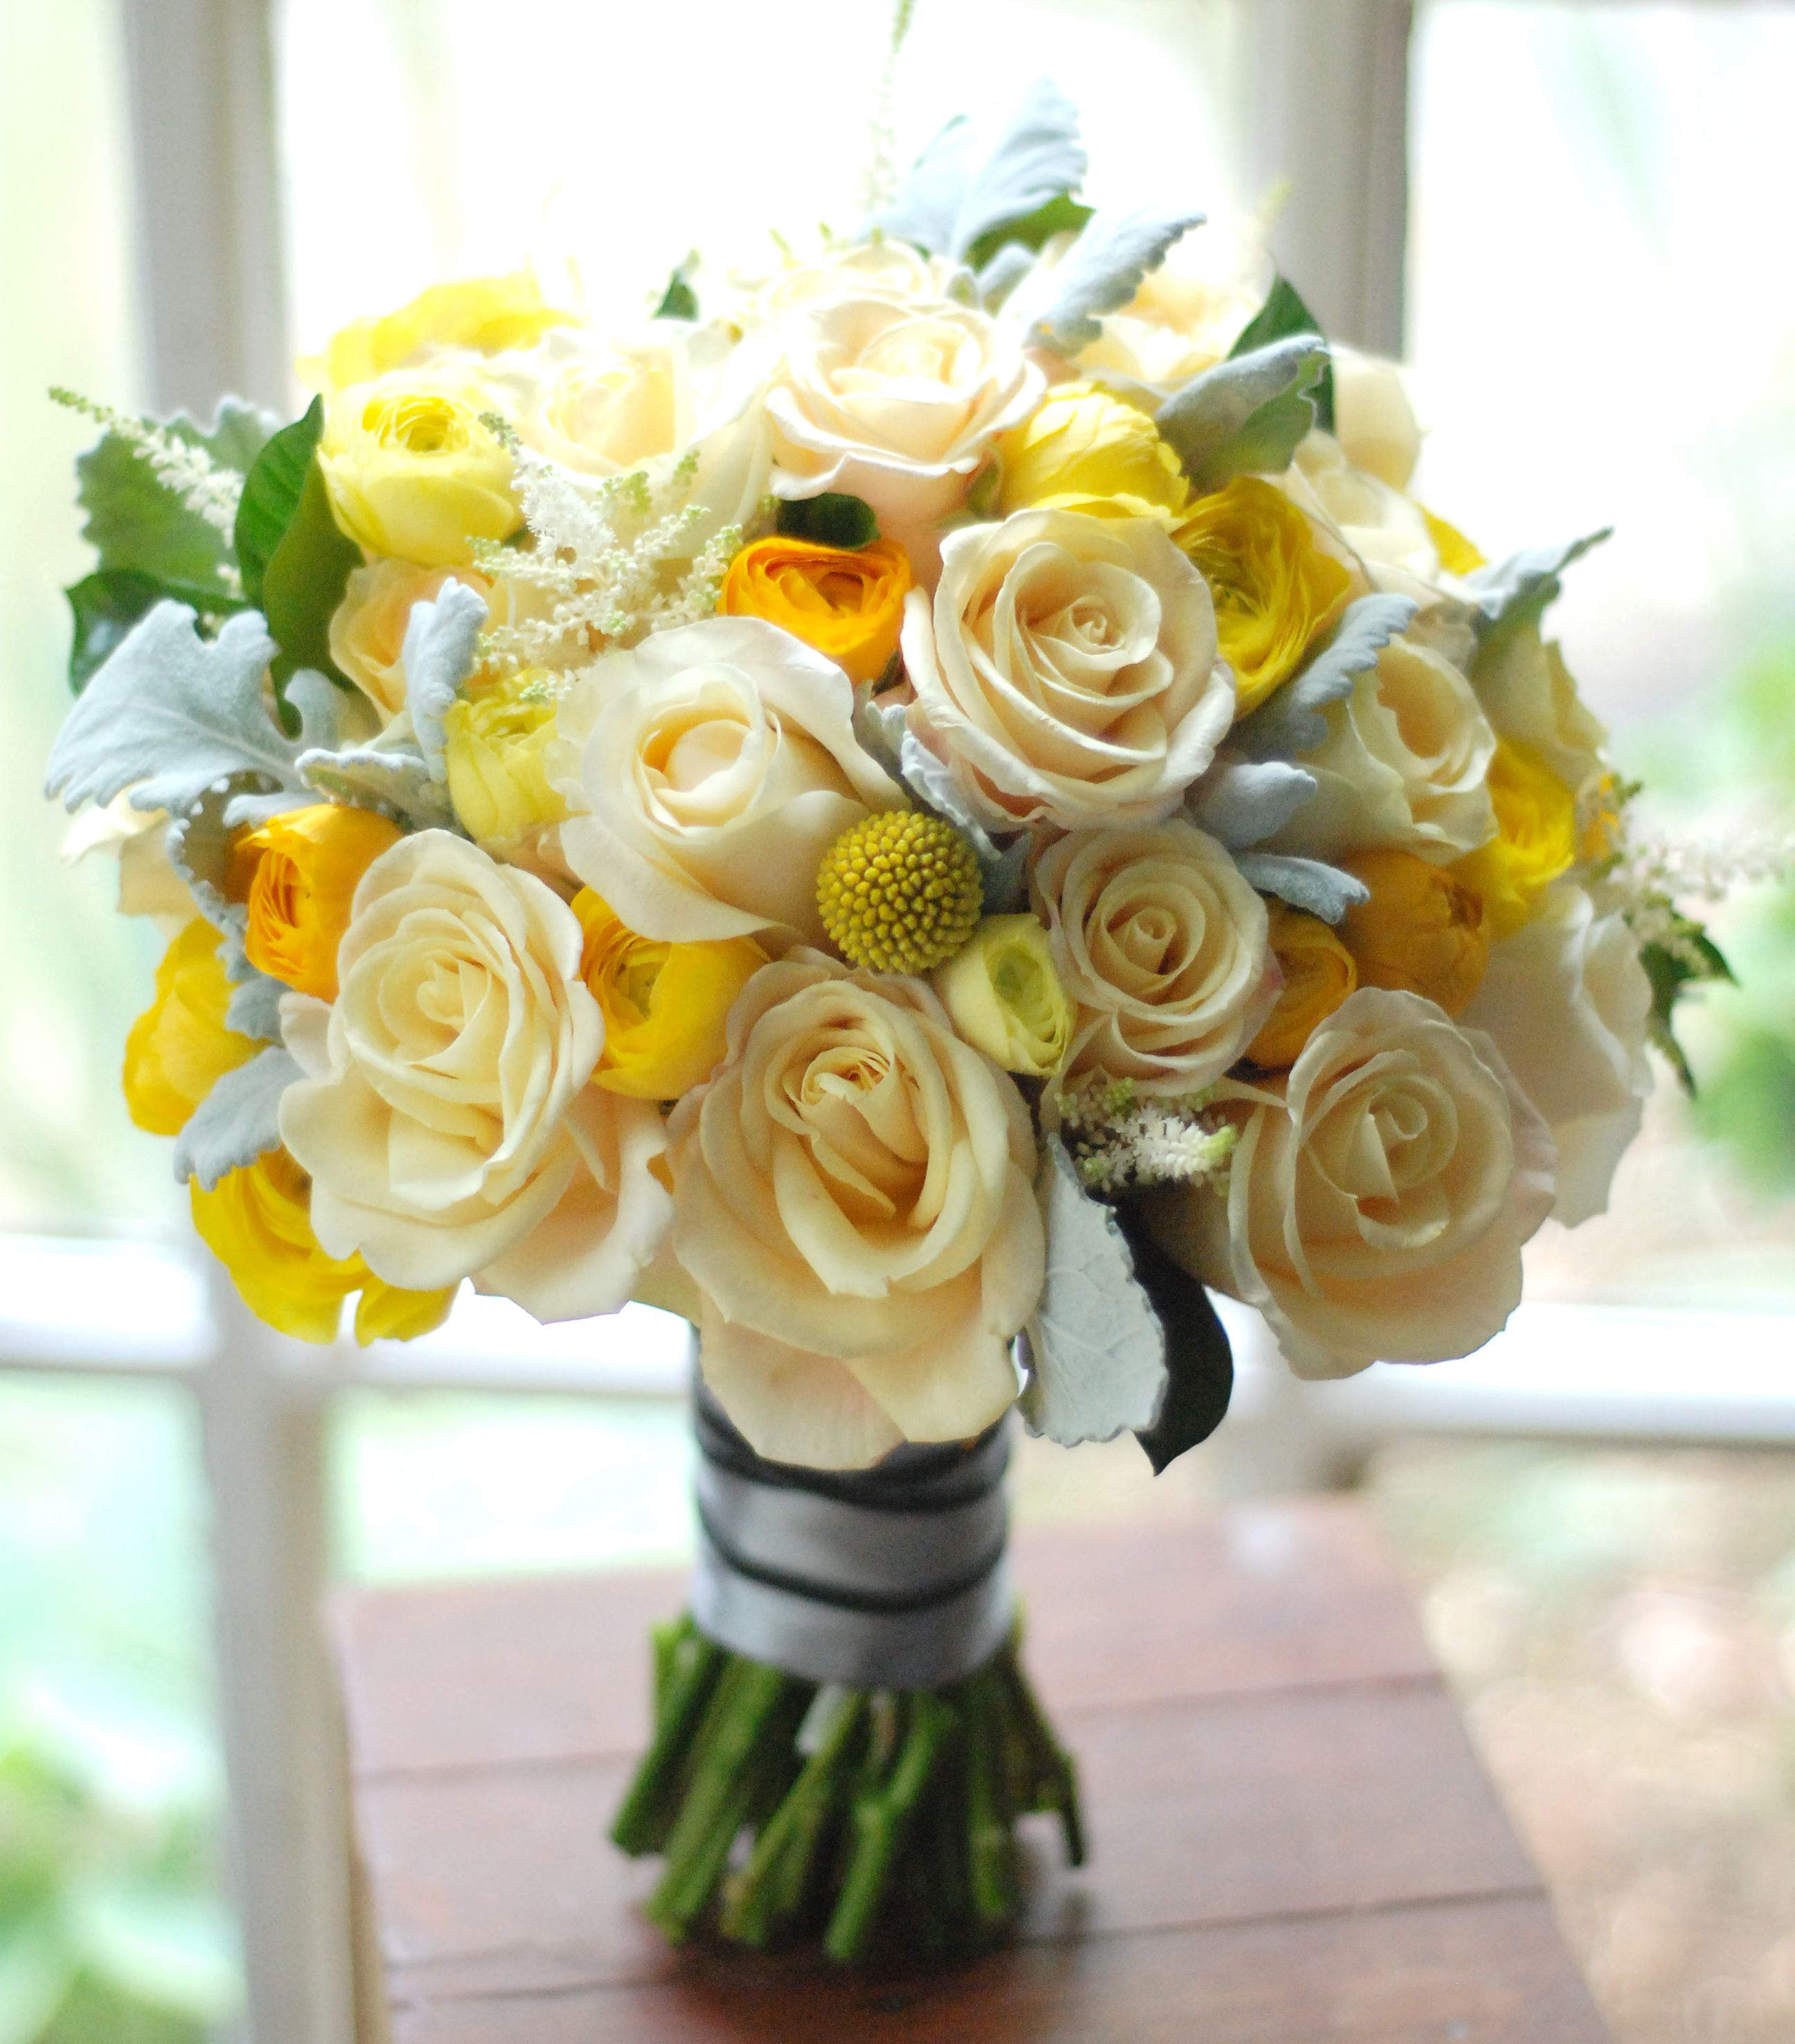 Wedding Flowers Yellow Roses: Very Similar Shape/size To Bridal Bouquet. Replace Some Of